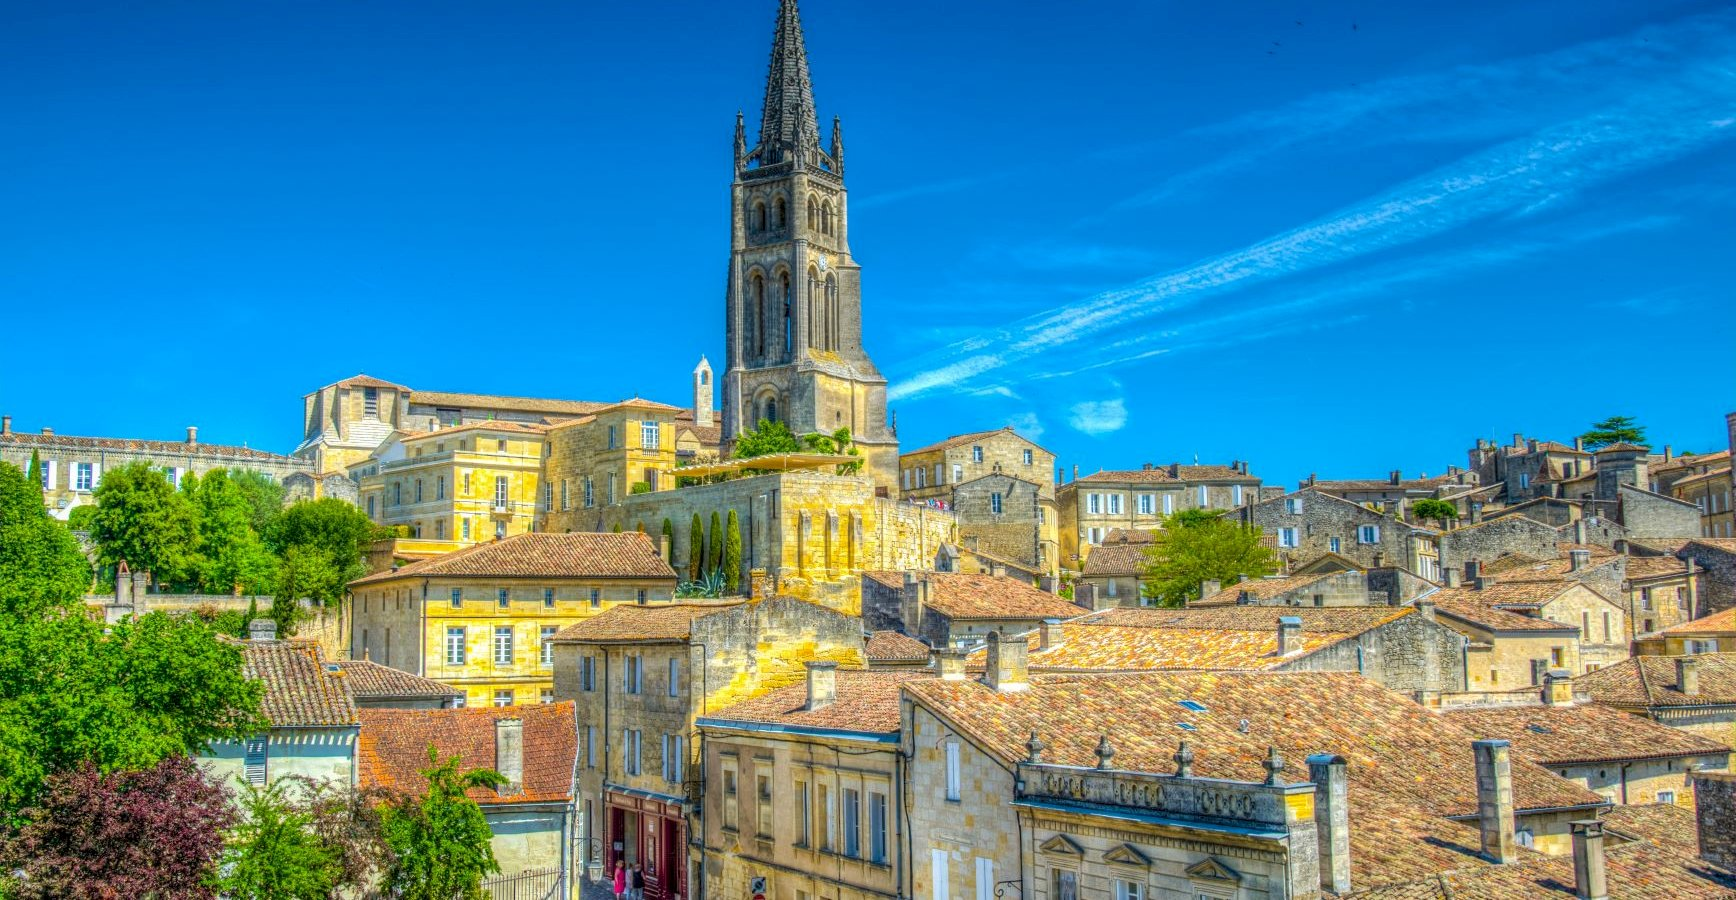 Ophorus Tours - Saint Emilion Small Group Private Guided Walking Tour with a Licensed Tour Guide